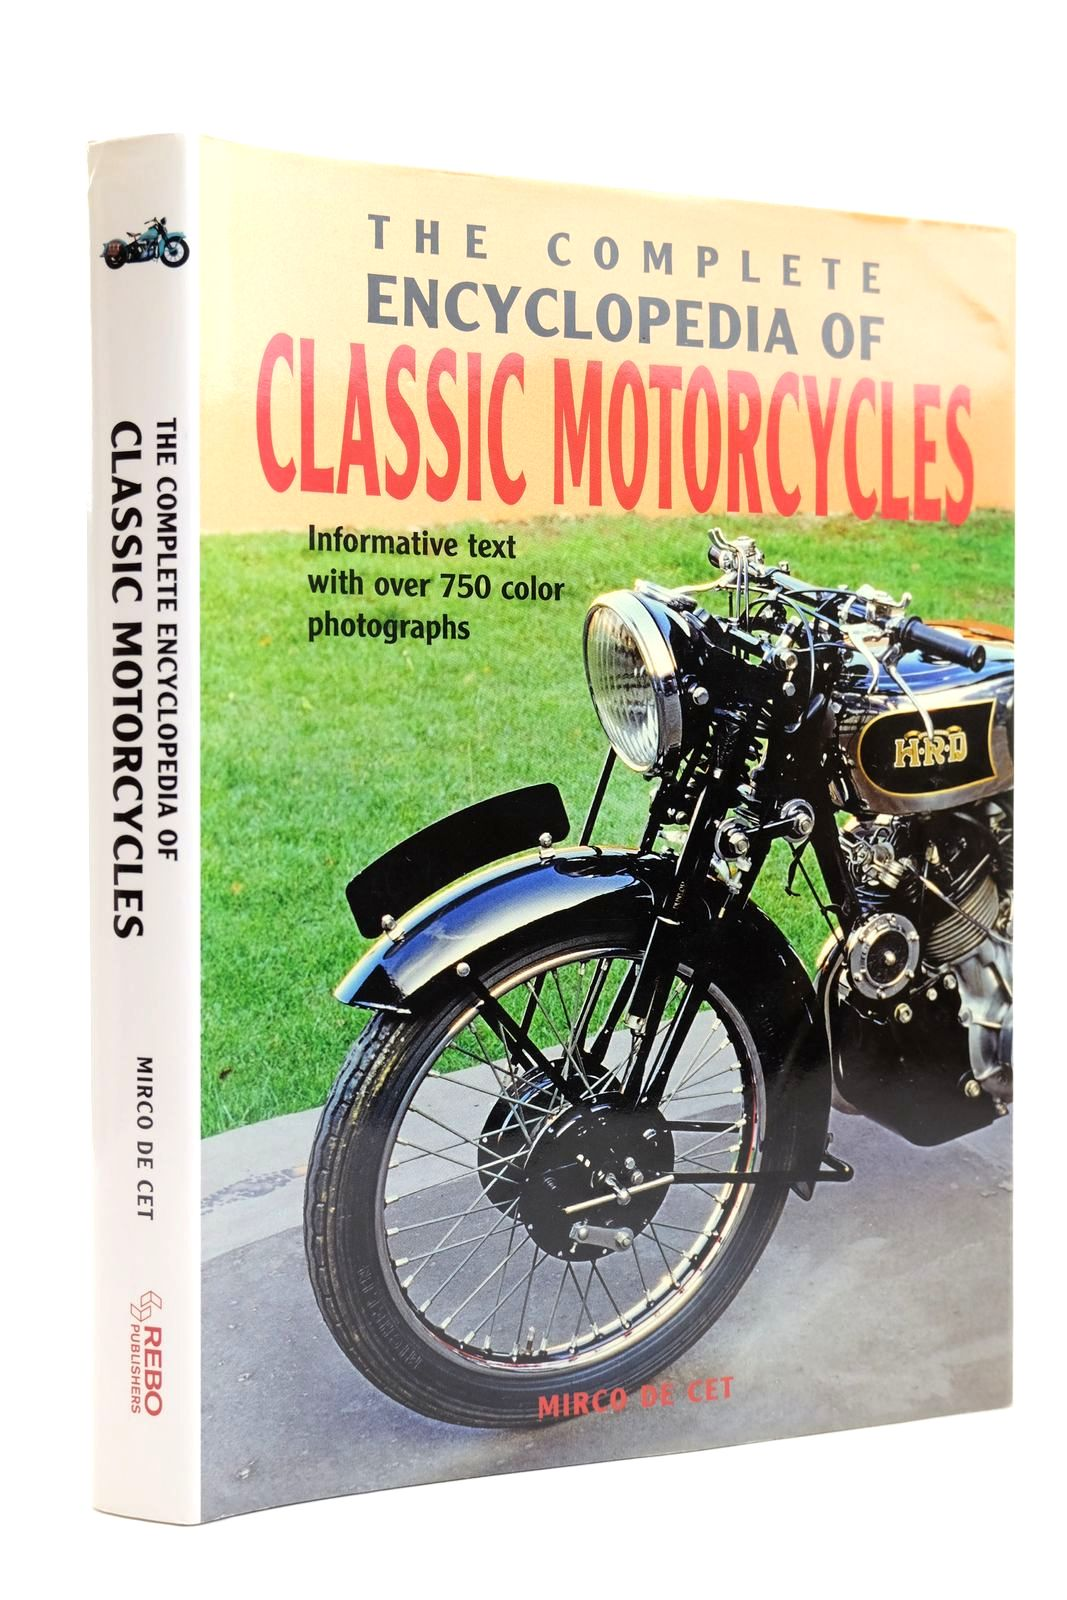 Photo of THE COMPLETE ENCYCLOPEDIA OF CLASSIC MOTORCYCLES- Stock Number: 2131865